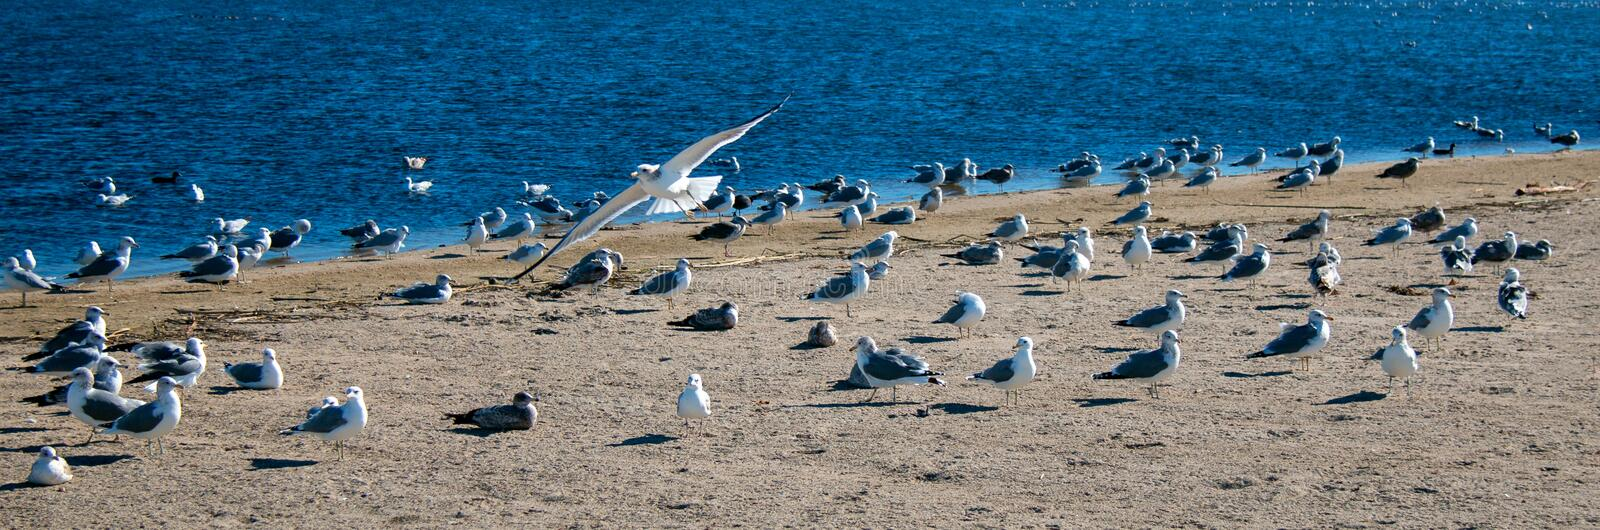 Lone Seagull flying over flock of seagulls [Laridae] at McGrath state park Santa Clara river mouth marsh at Ventura California USA. Lone Seagull flying over royalty free stock photo